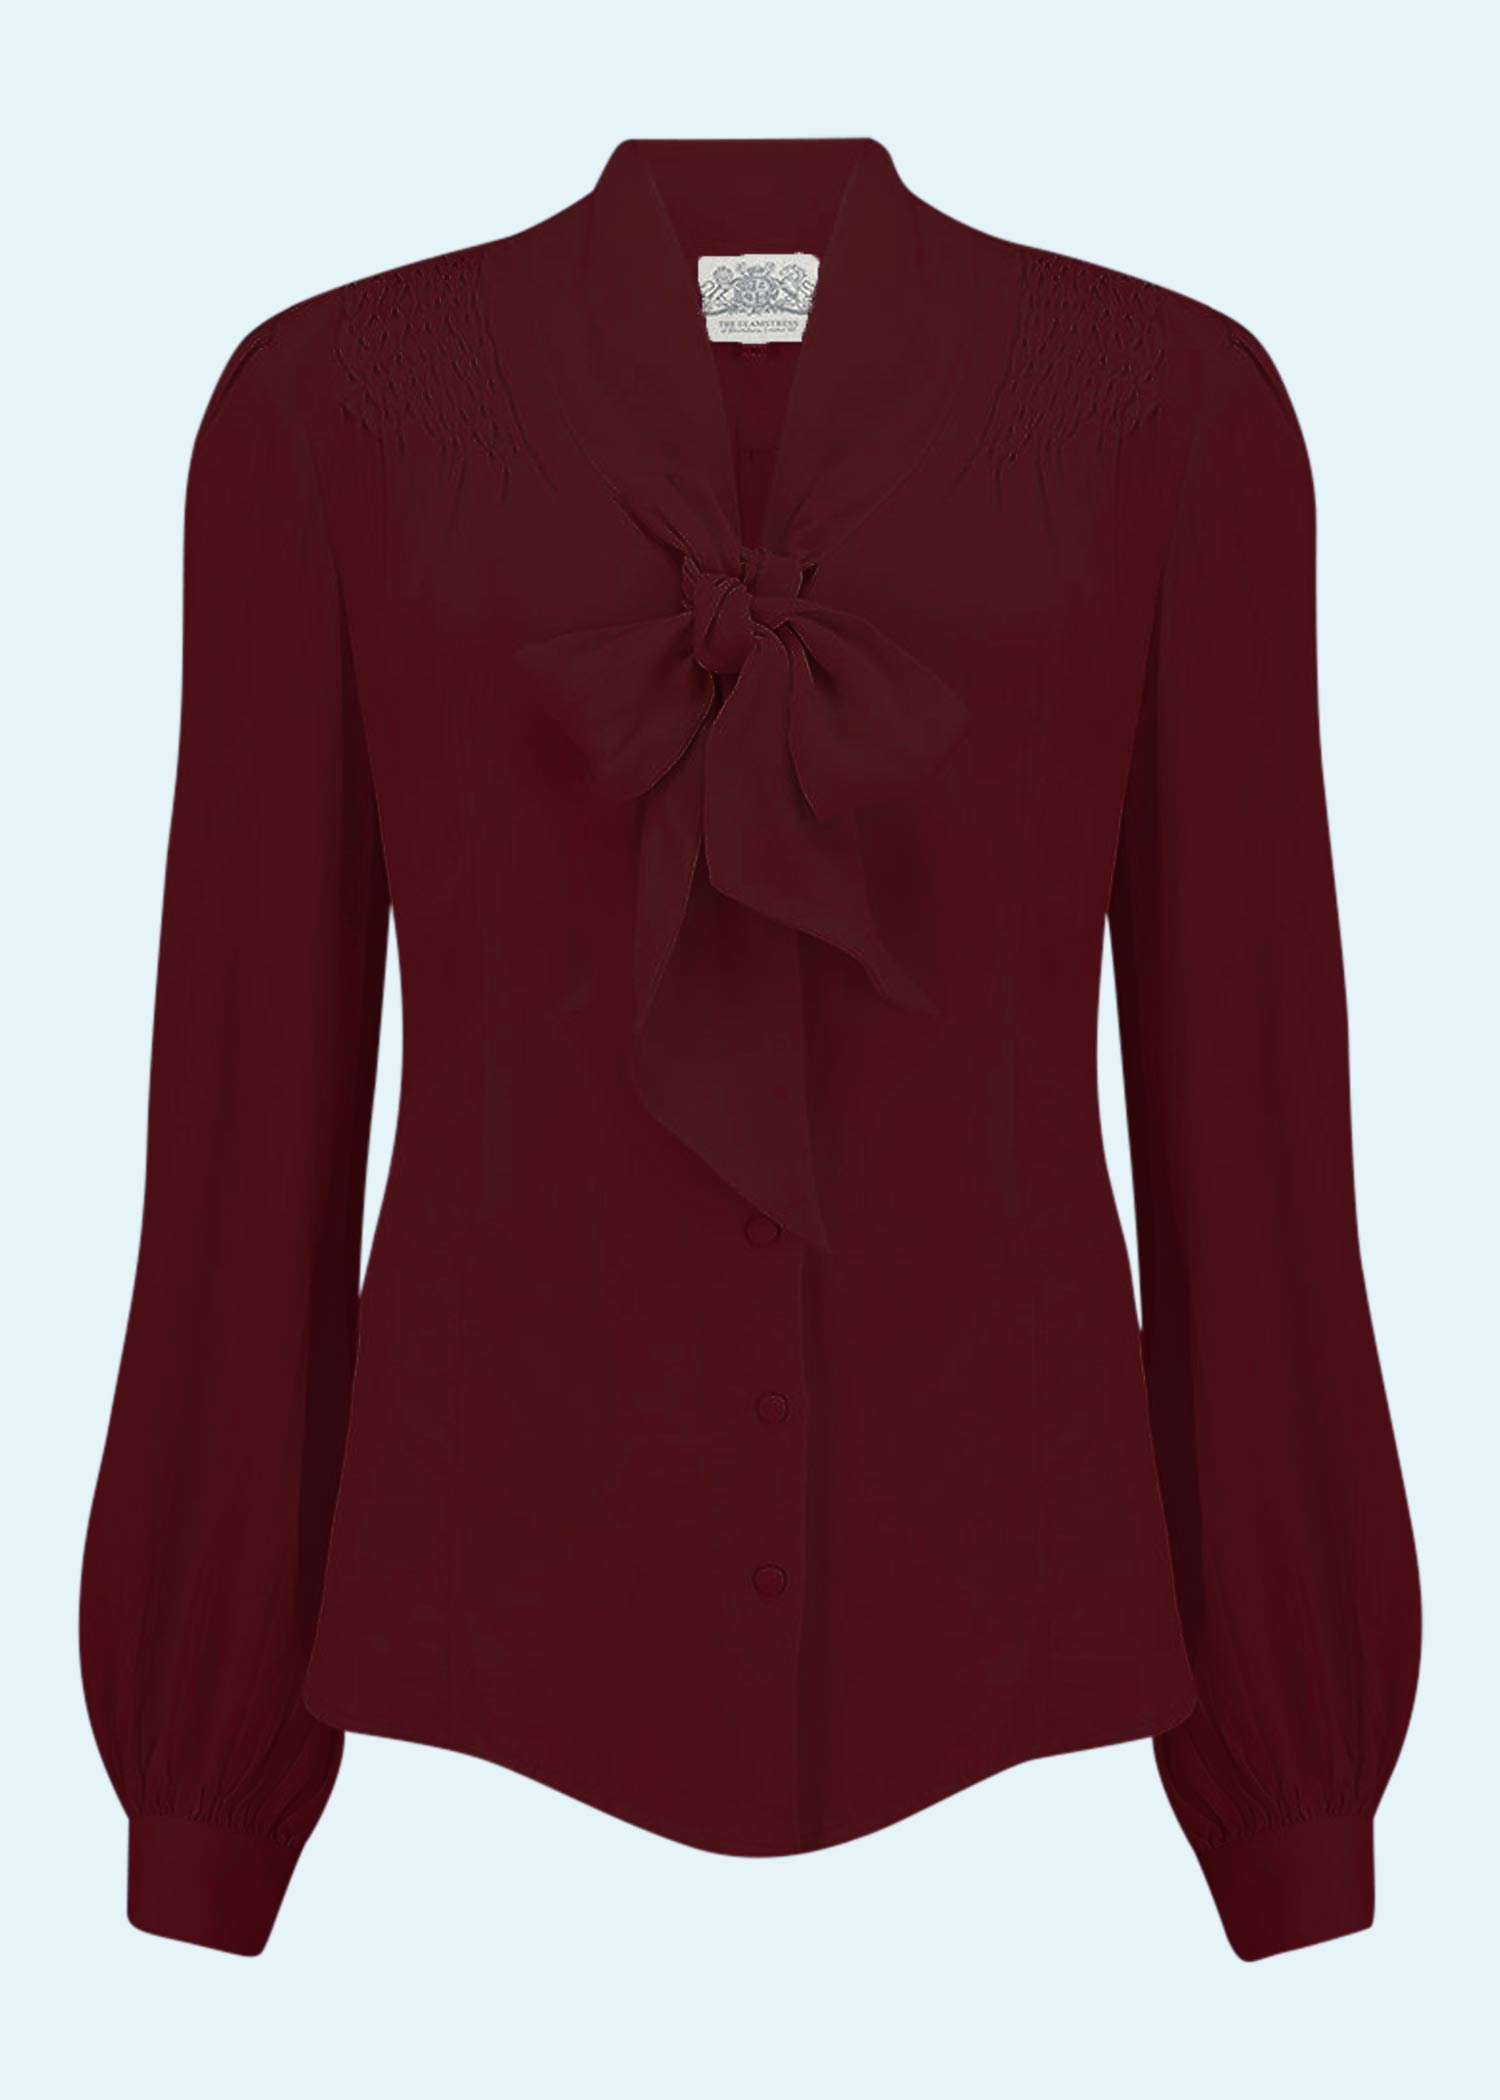 Long-sleeved shirt blouse with tie